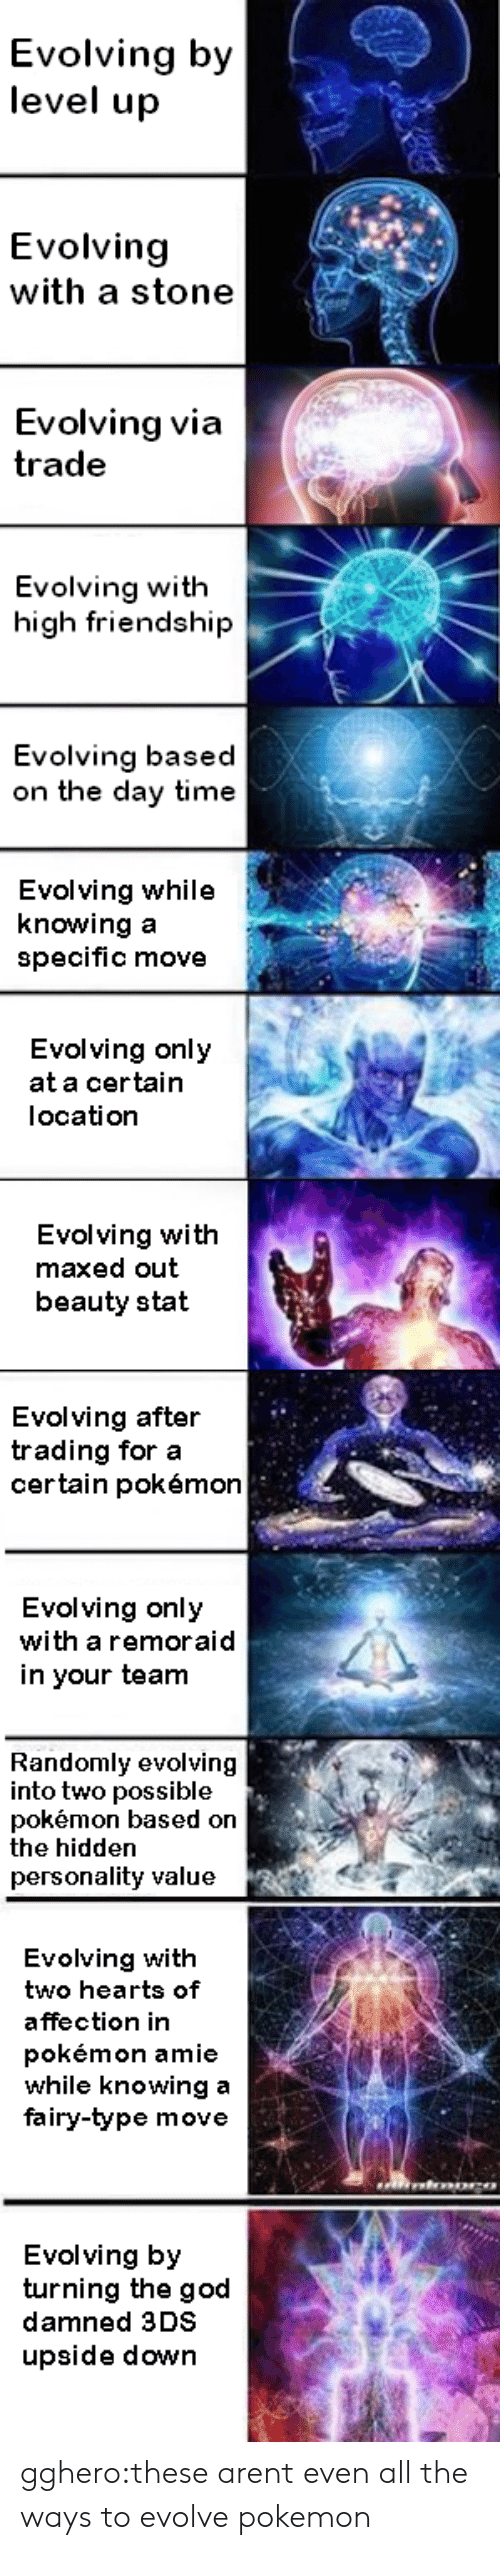 On The Day: Evolving by  level up  Evolving  with a stone  Evolving via  trade  Evolving with  high friendship  Evolving based  on the day time  Evolving while  knowing a  specific move  Evolving only  at a certain  location  Evolving with  maxed out  beauty stat   Evolving after  trading for a  certain pokémor  Evolving only  with a remoraid  in your team  Randomly evolving  into two possible  pokémon based on  the hidden  personality value  Evolving with  two hearts of  affection in  pokémon amie  while knowing a  fairy-type move  Evolving by  turning the god  damned 3DS  upside down gghero:these arent even all the ways to evolve pokemon